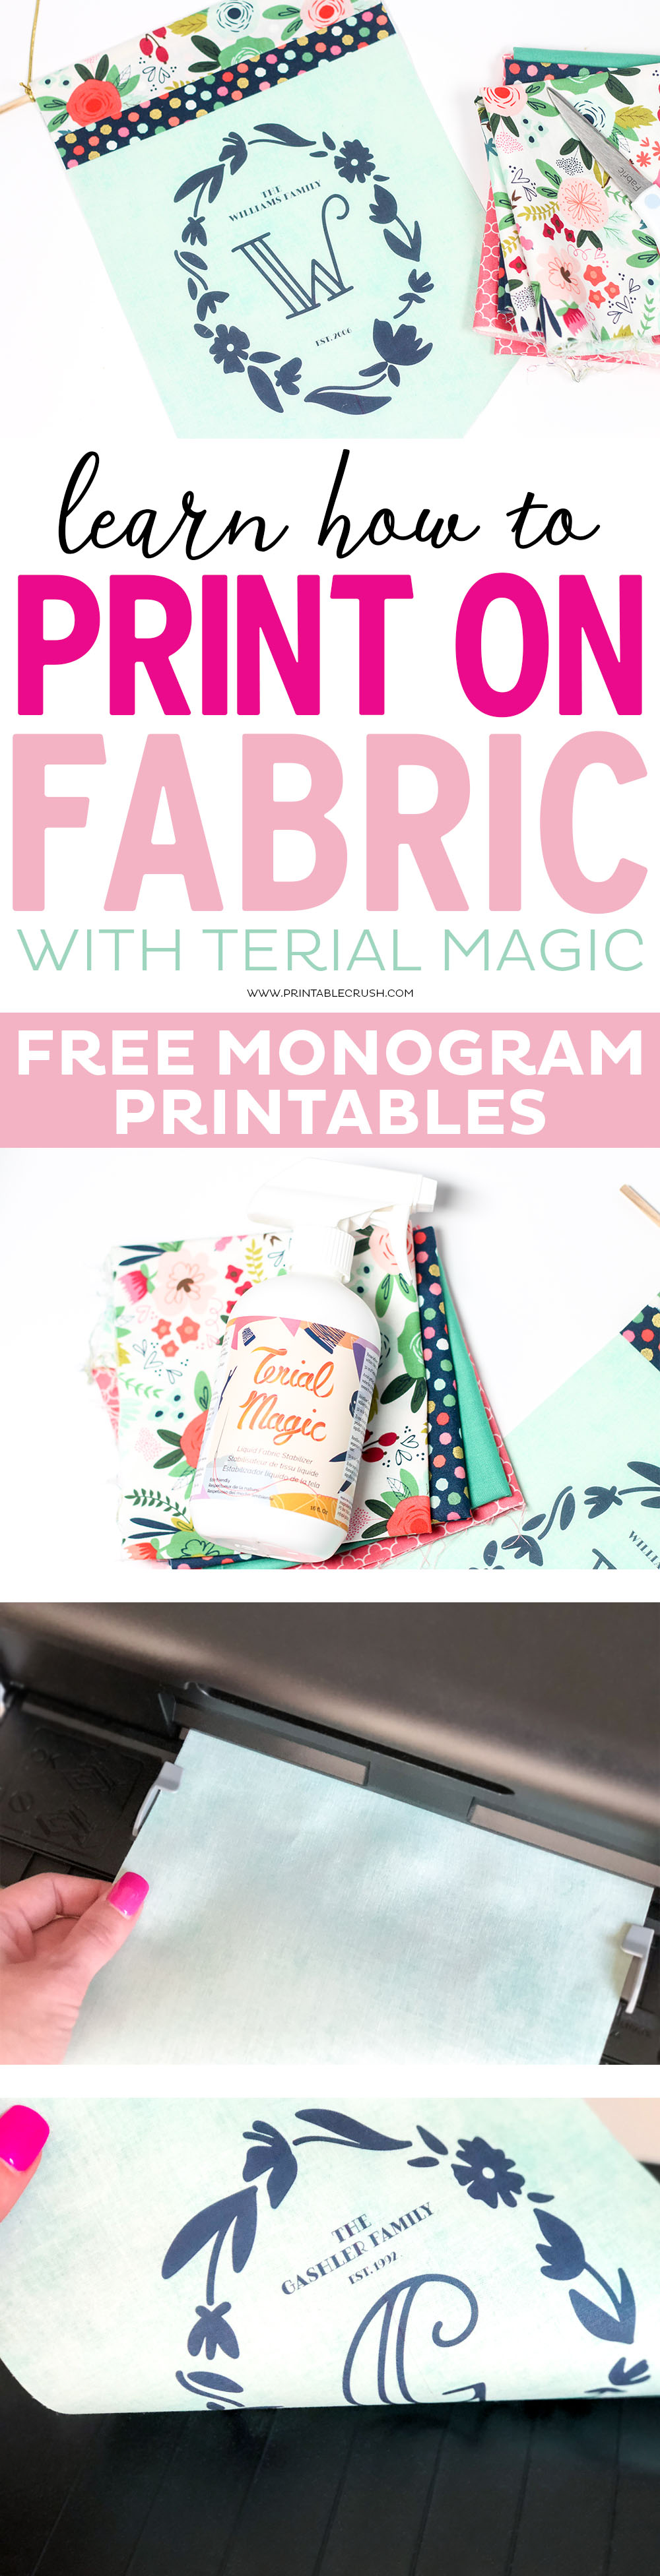 Terial Magic is a Fabric Stabilizer that allows you to easily print on fabric with your inkjet or laser printer. Print patterns, word art, banners, and more! via @printablecrush